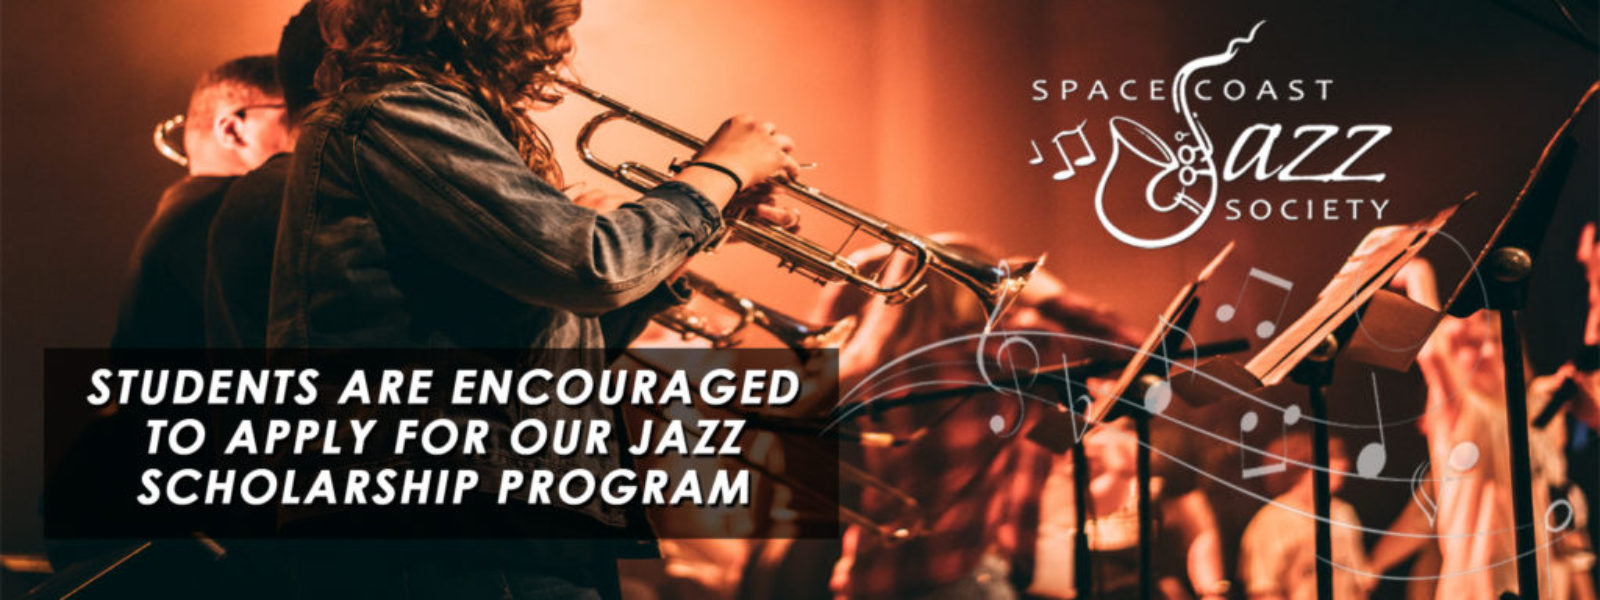 Space-Coast-Jazz-Society-Scholorship-Program